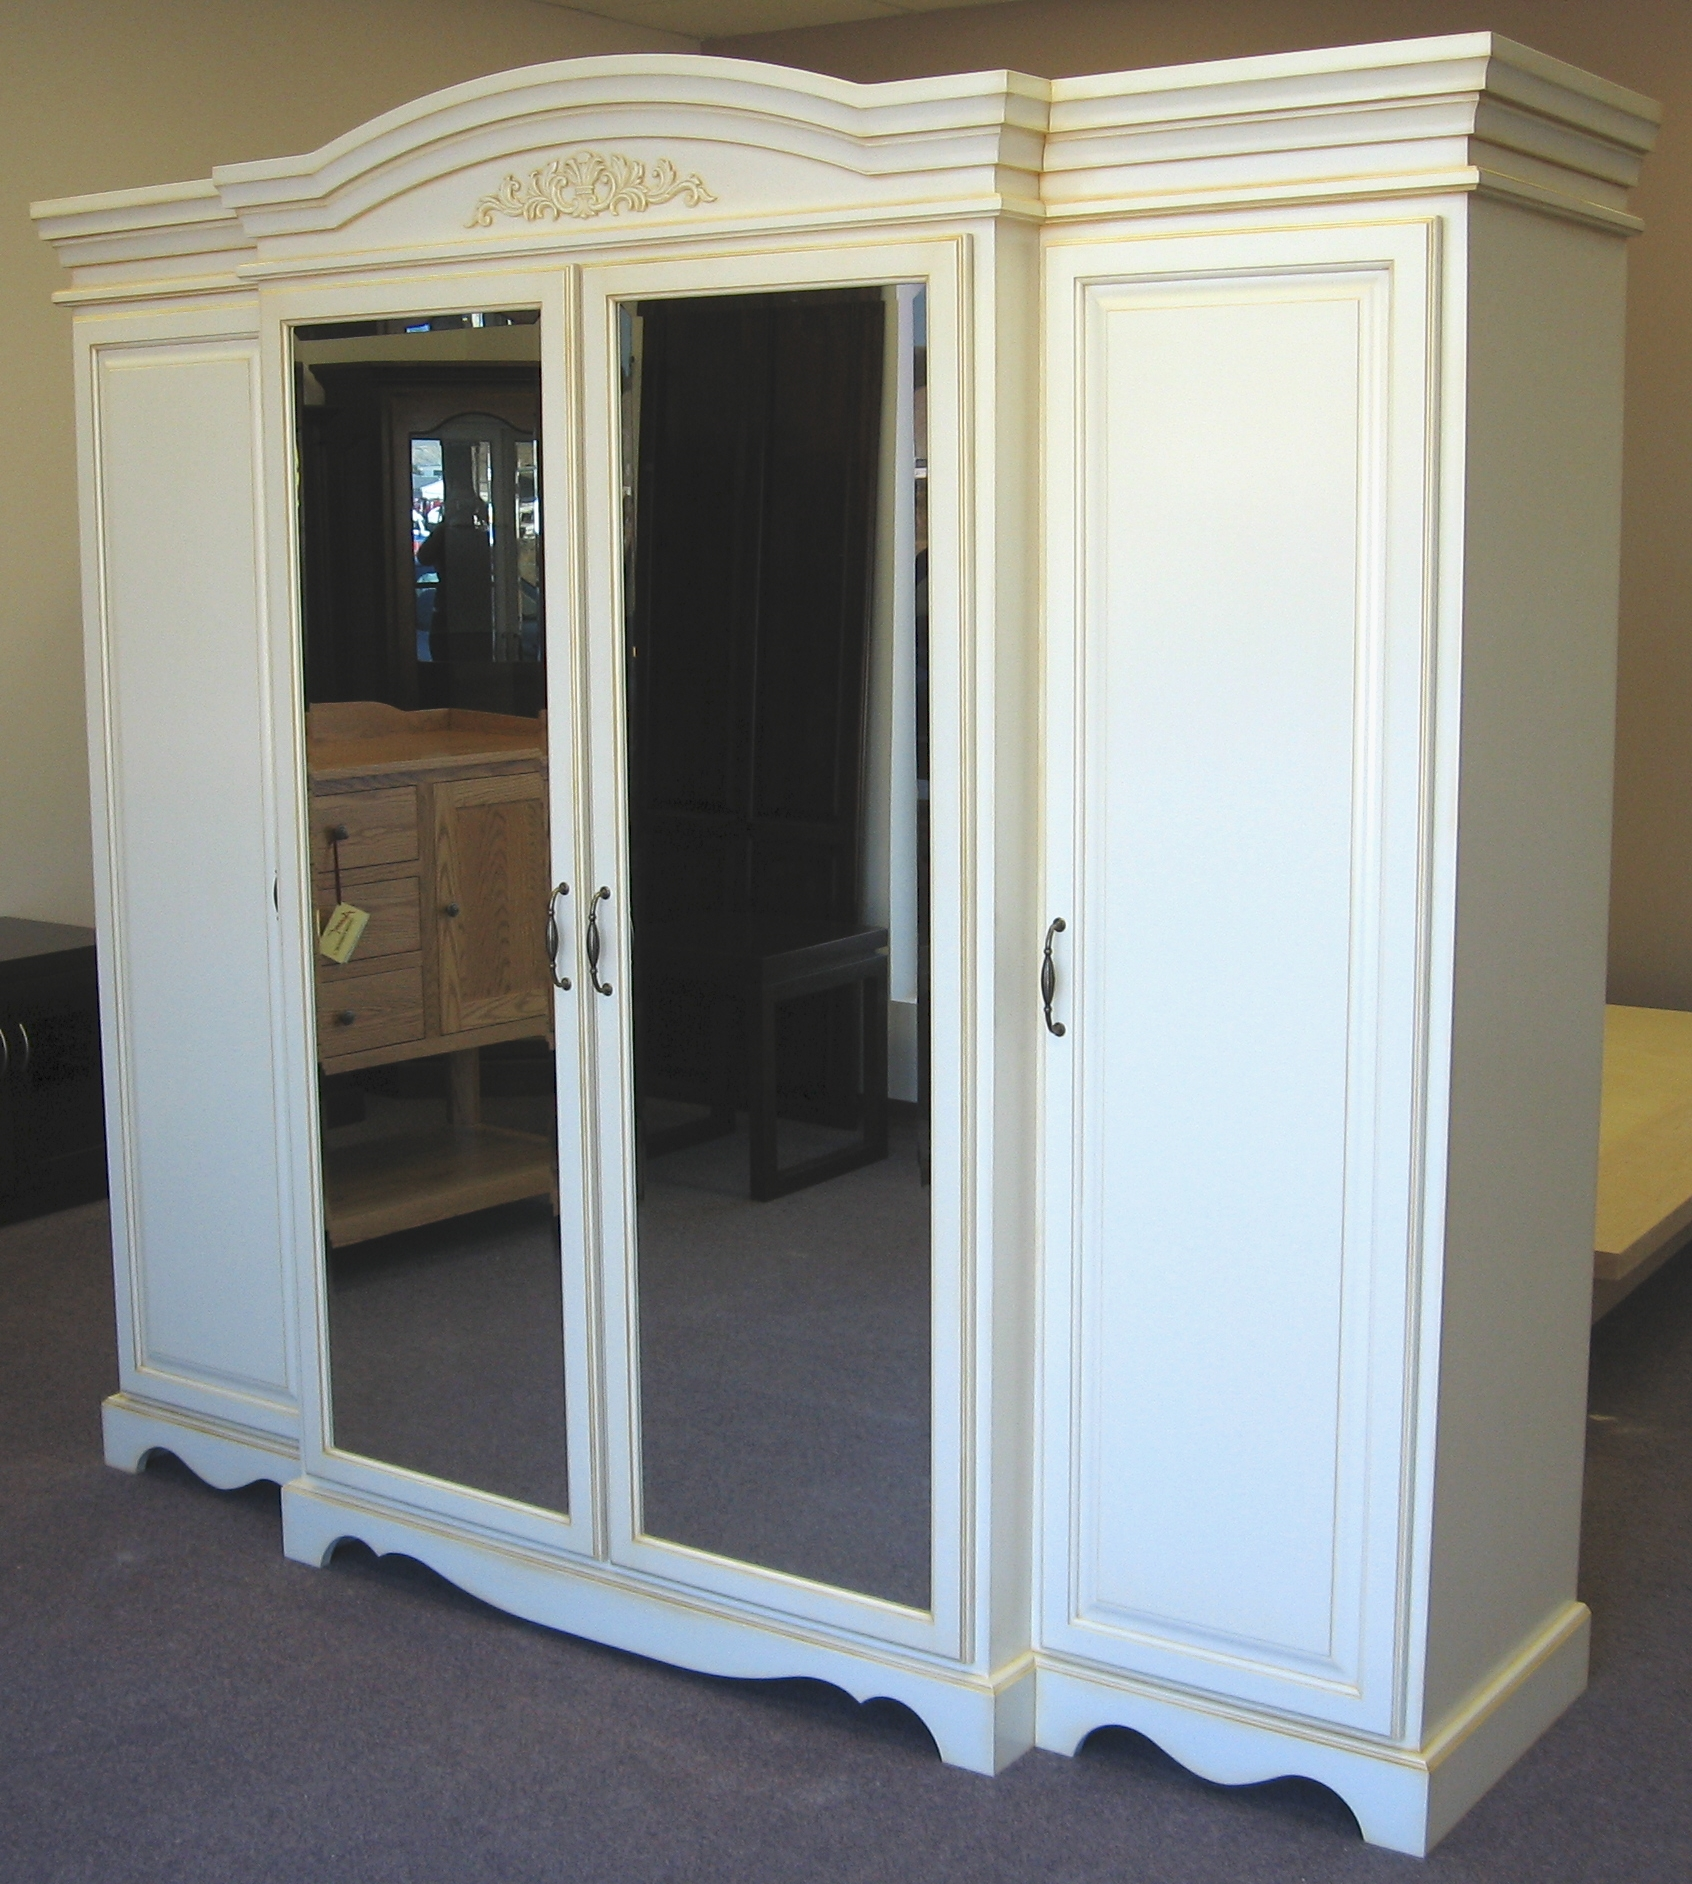 traditional-style-painted-clothes-storage-armoire-mirrored-cabinet.JPG